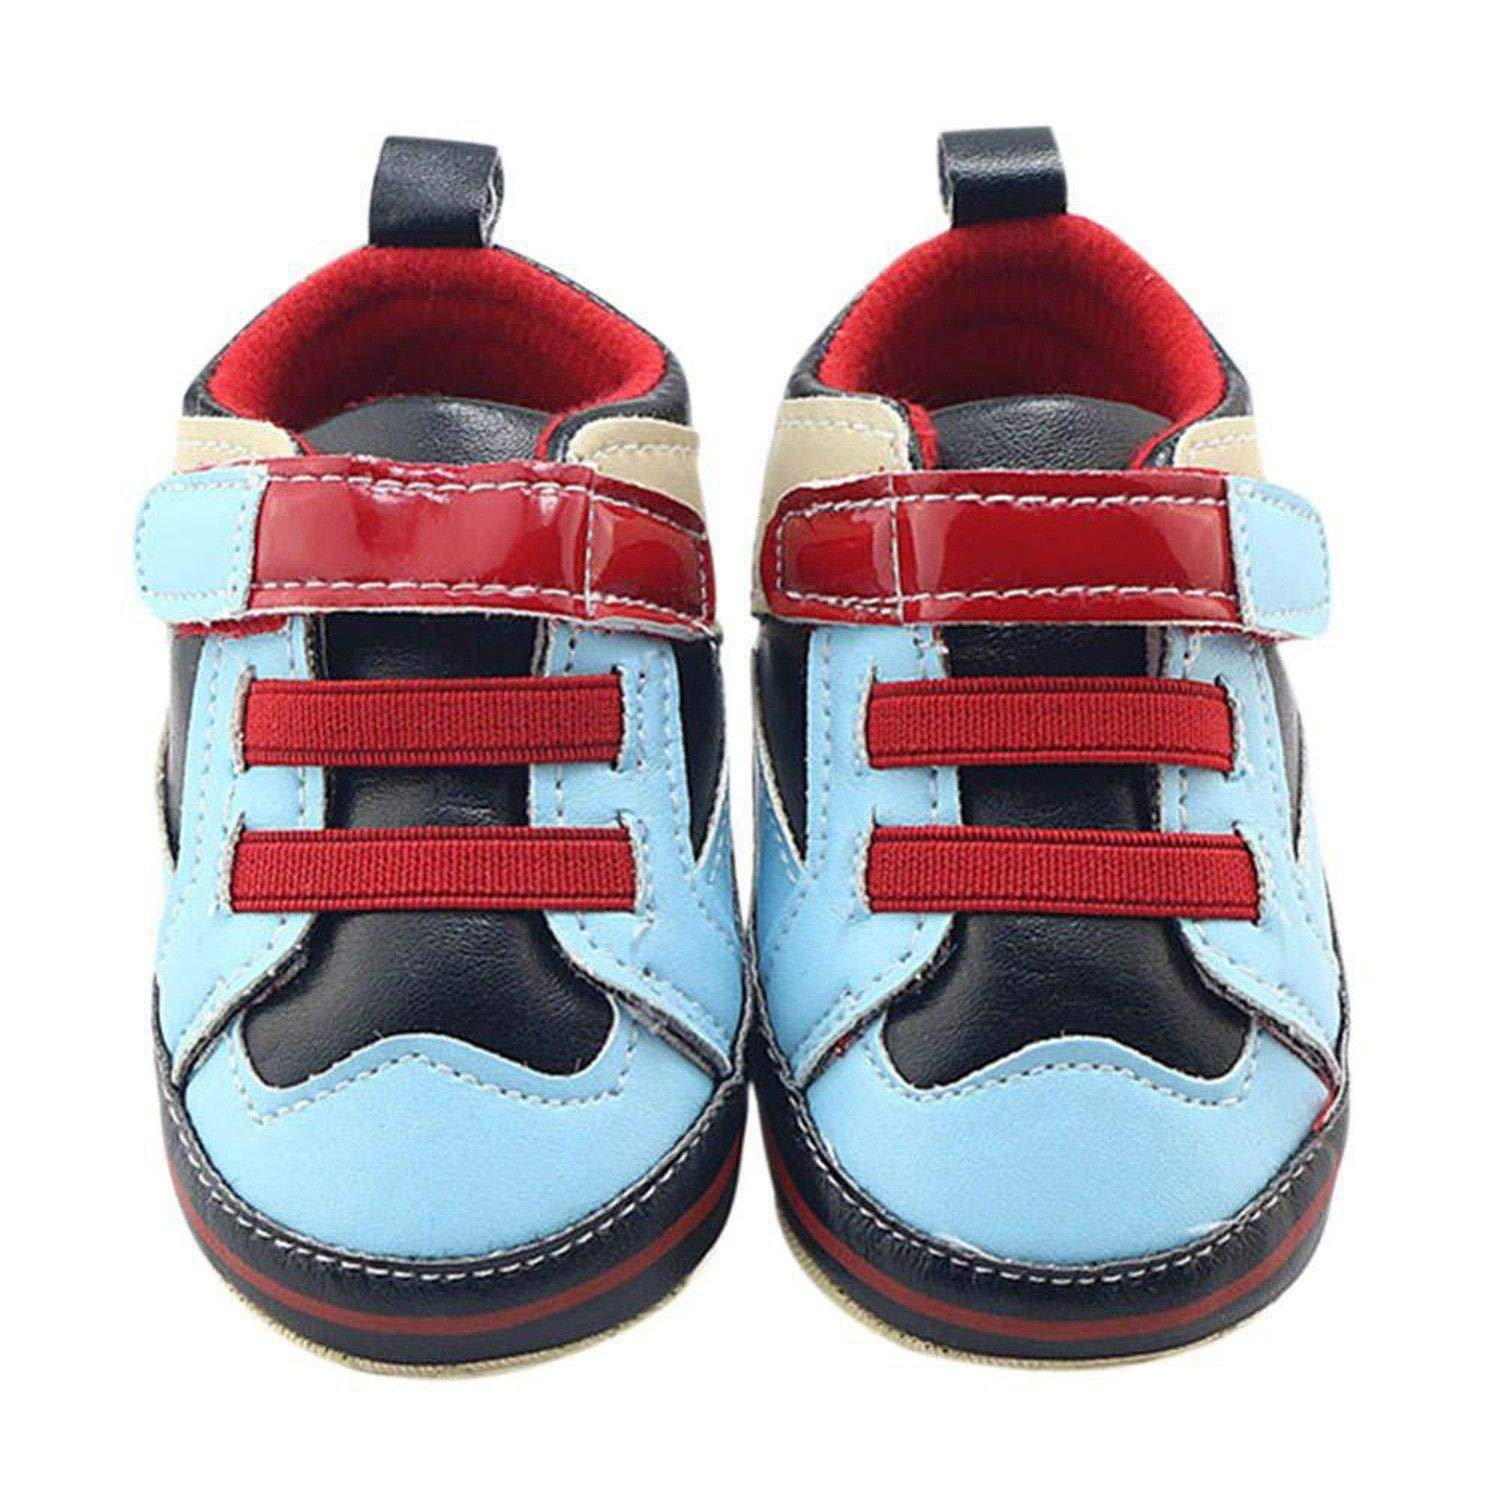 Newborn Baby Girl Toddler Shoes Casual Leather Shoes Spring Autumn Soft Sole Infant First Walkers